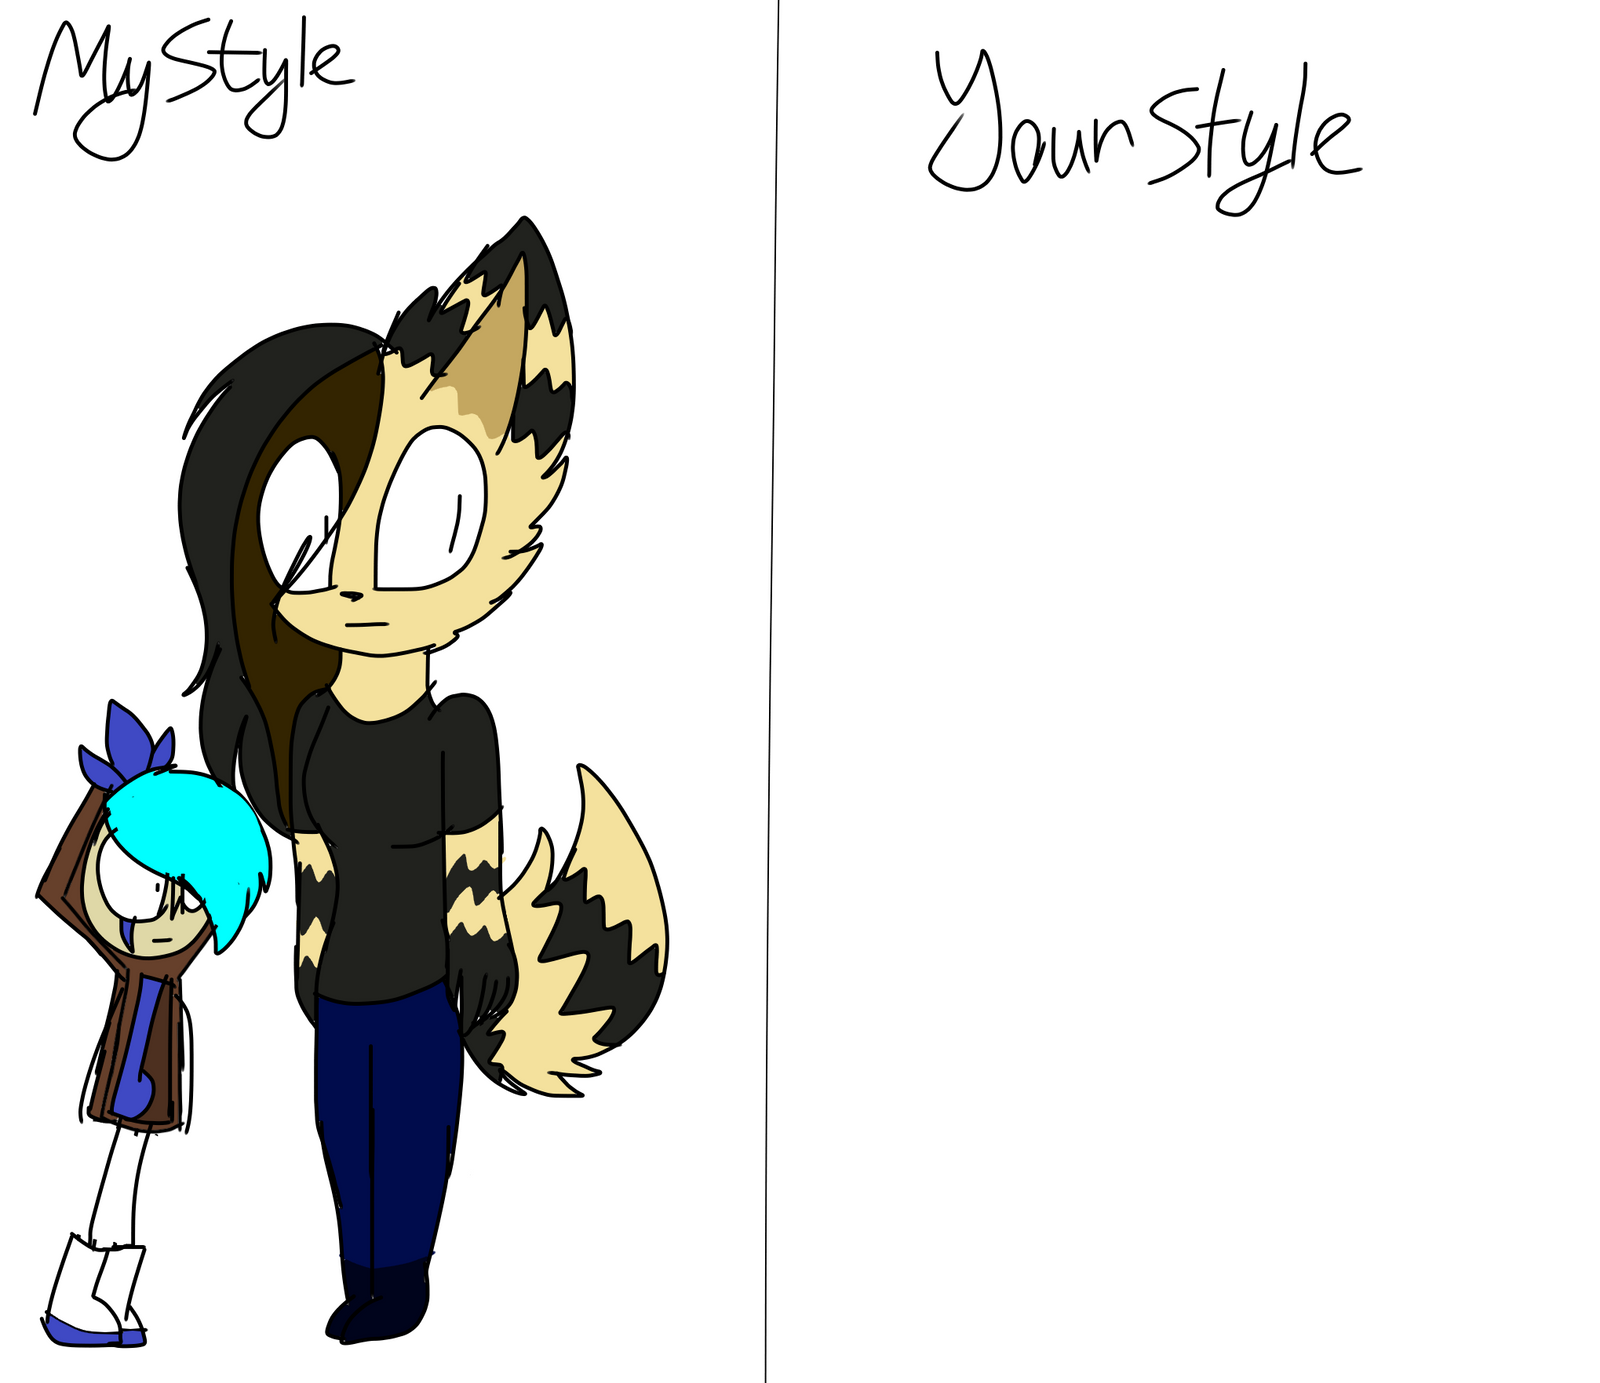 Your Style and My Style by astya45